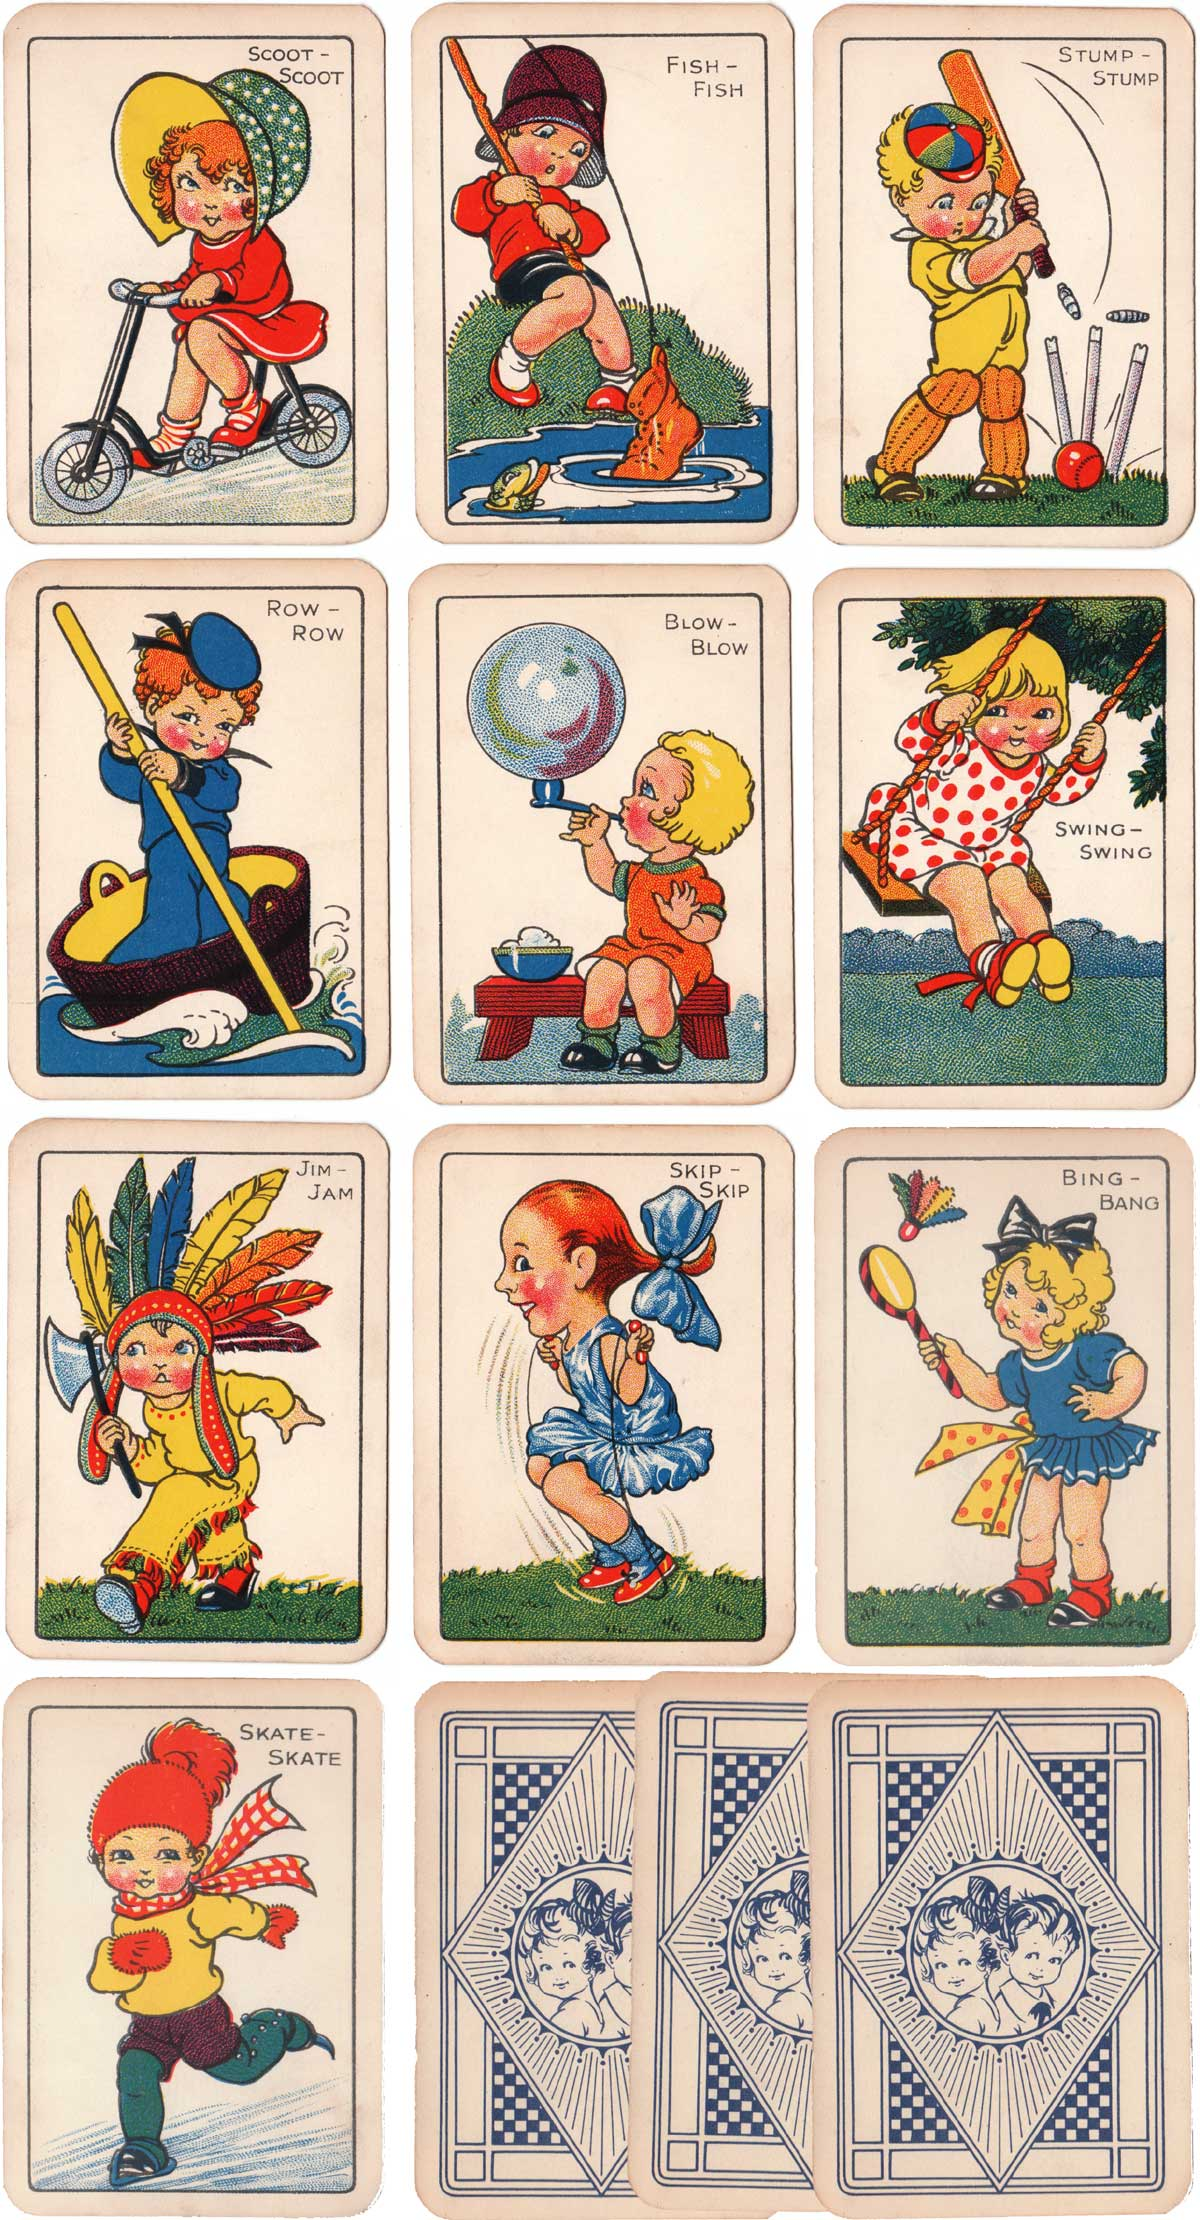 Snap card game produced in Germany by Oppenheimer und Sulzbacher, 1920s